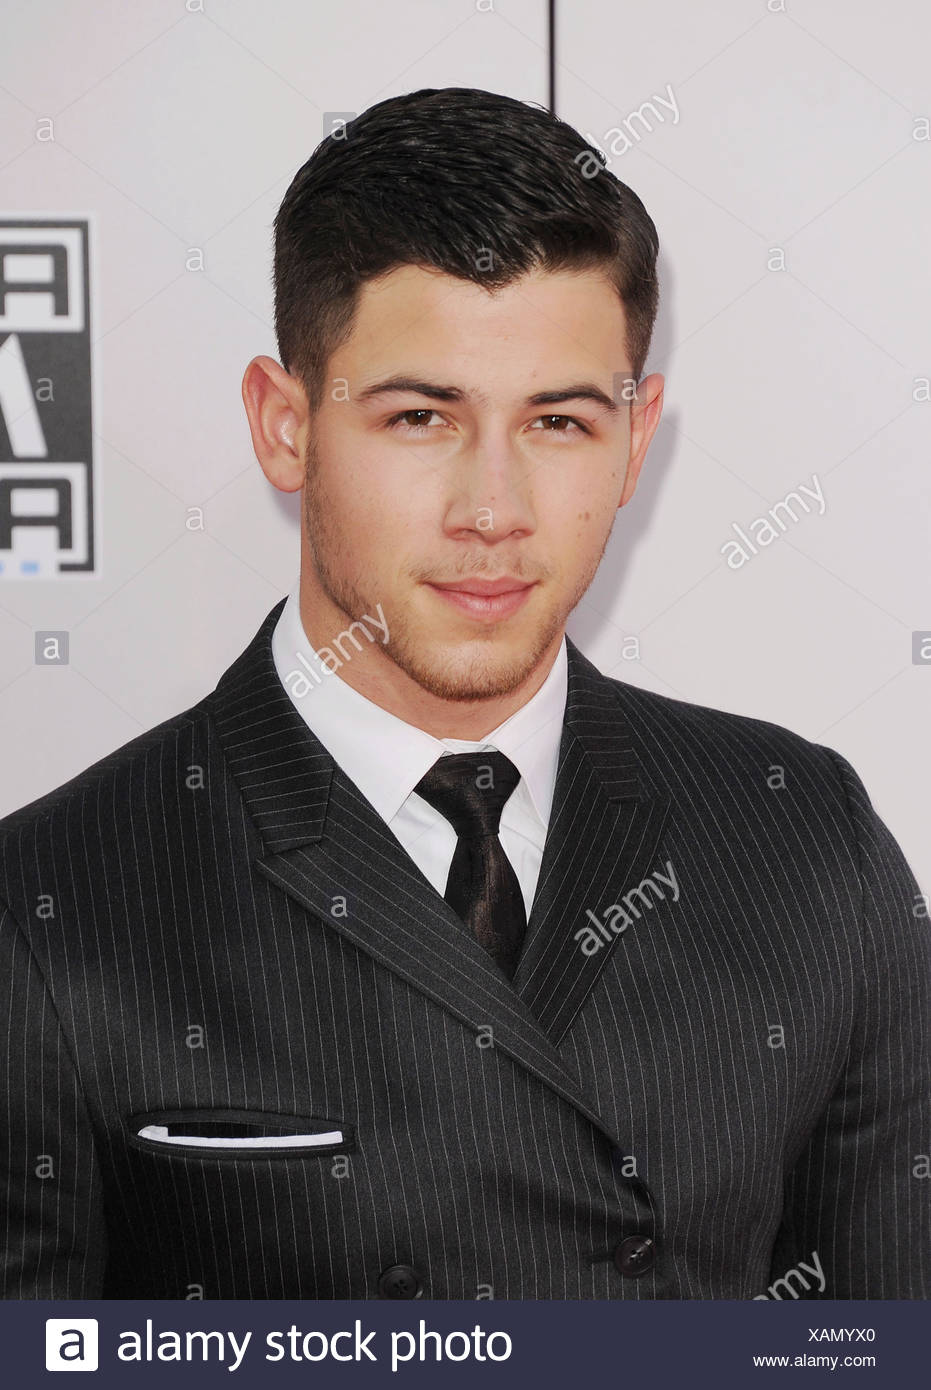 065889d62f325 Recording artist Joe Jonas arrives at the 2014 American Music Awards at  Nokia Theatre L.A. Live